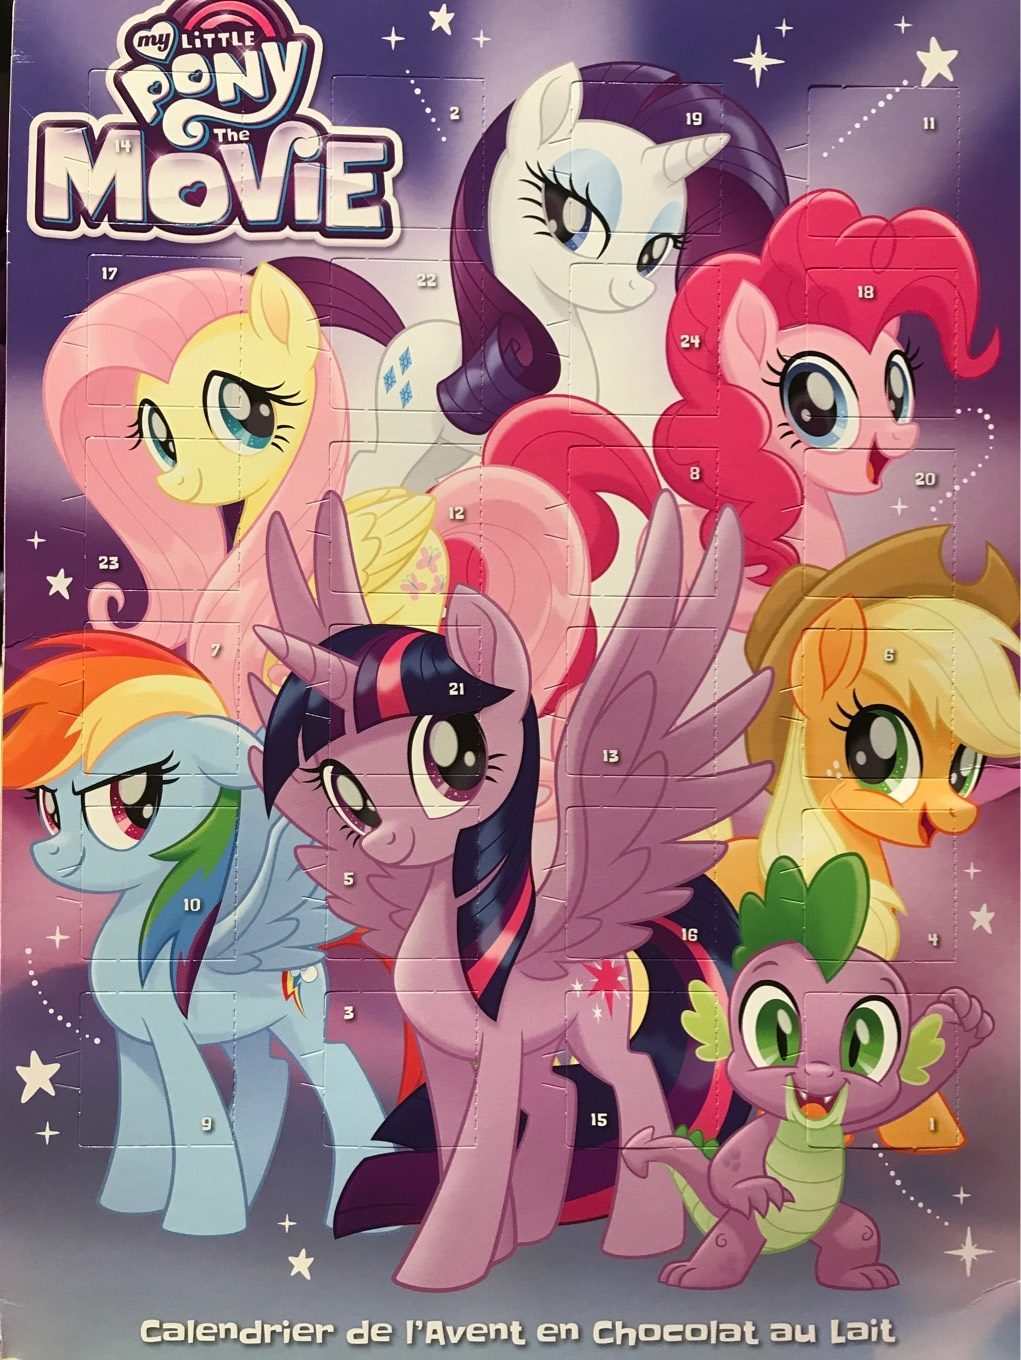 Calendrier de l'Avent My Little Pony The Movie - Product